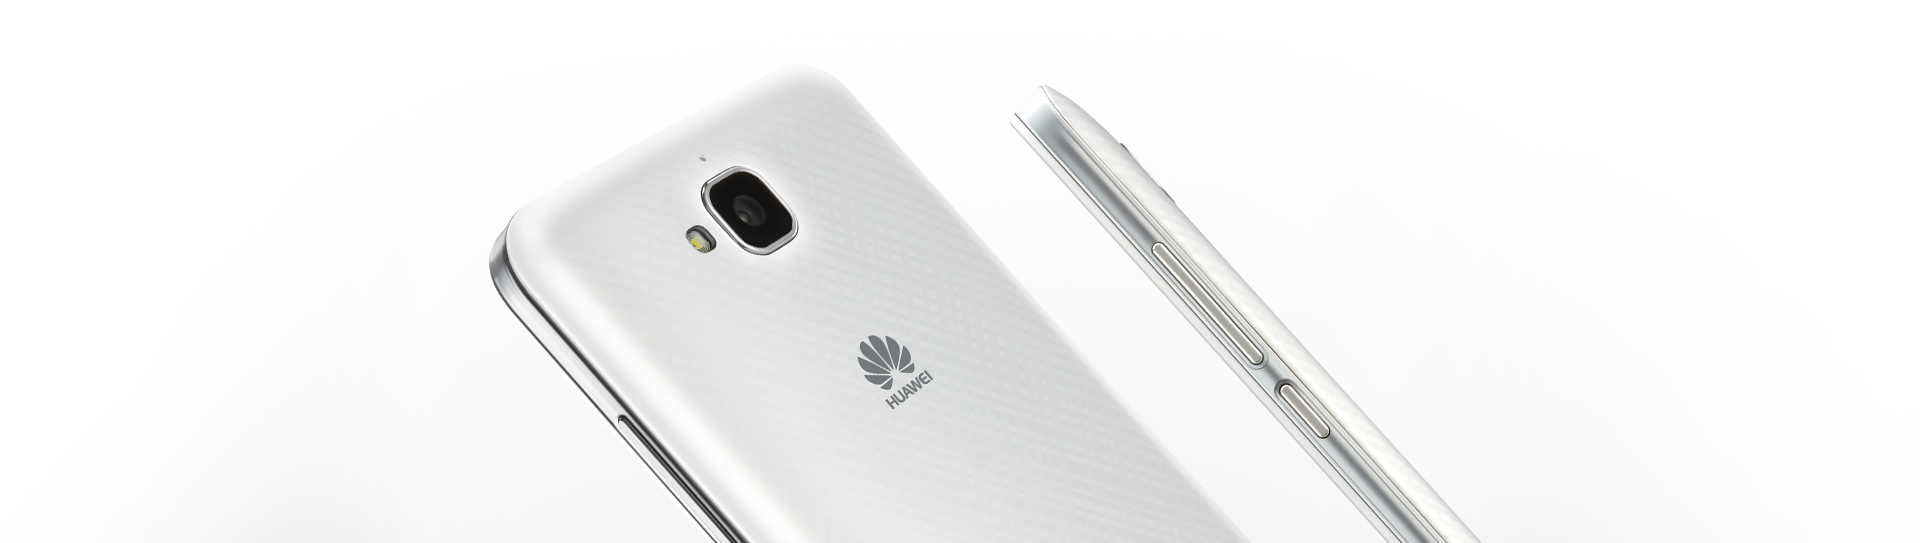 Order HUAWEI Y6 PRO mobile phone online at Best Price | Dealayo com